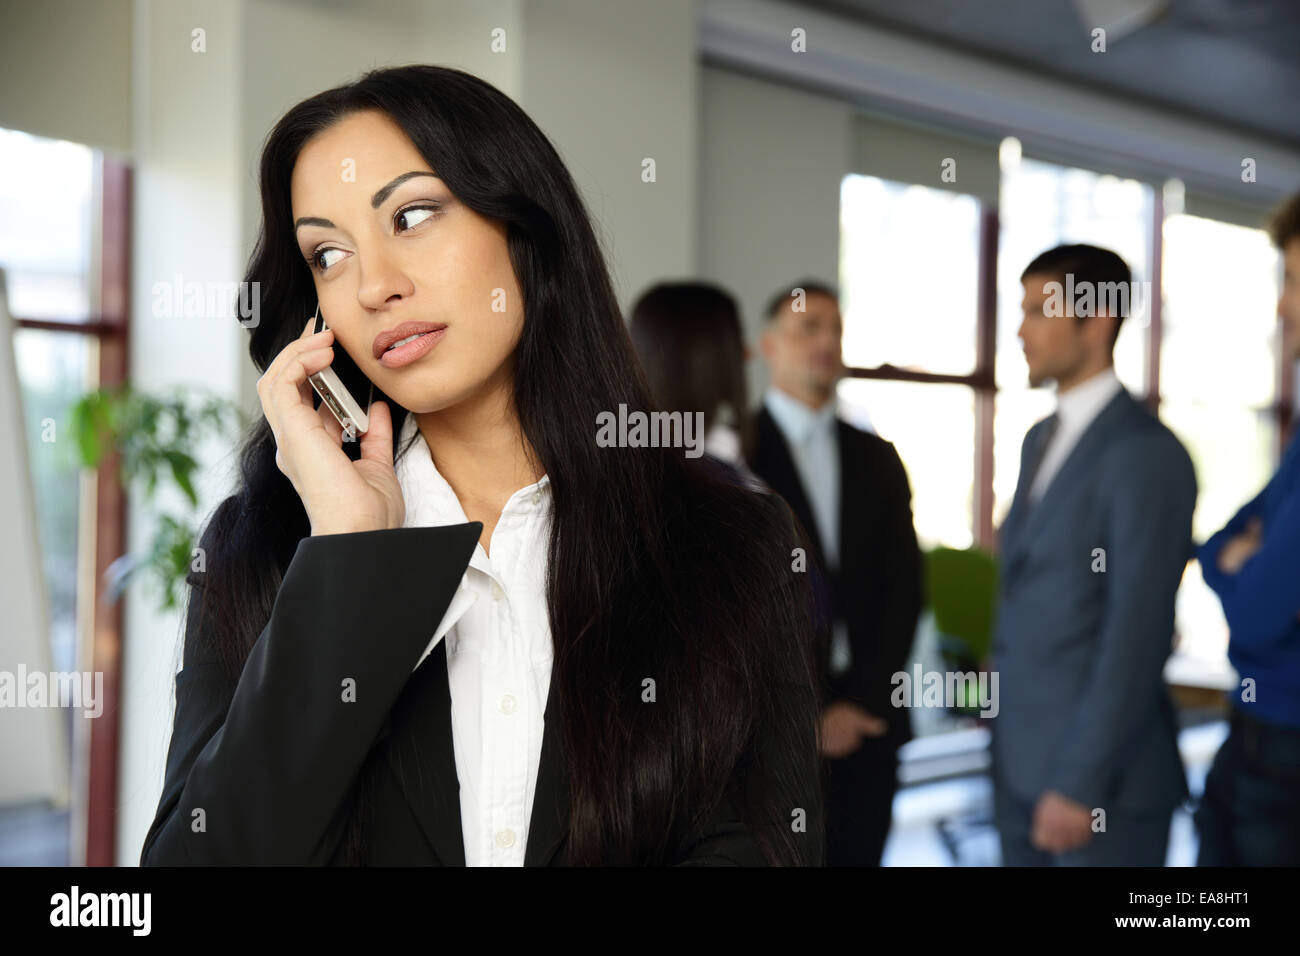 Beautiful businesswoman talking on the phone with colleagues on background - Stock Image